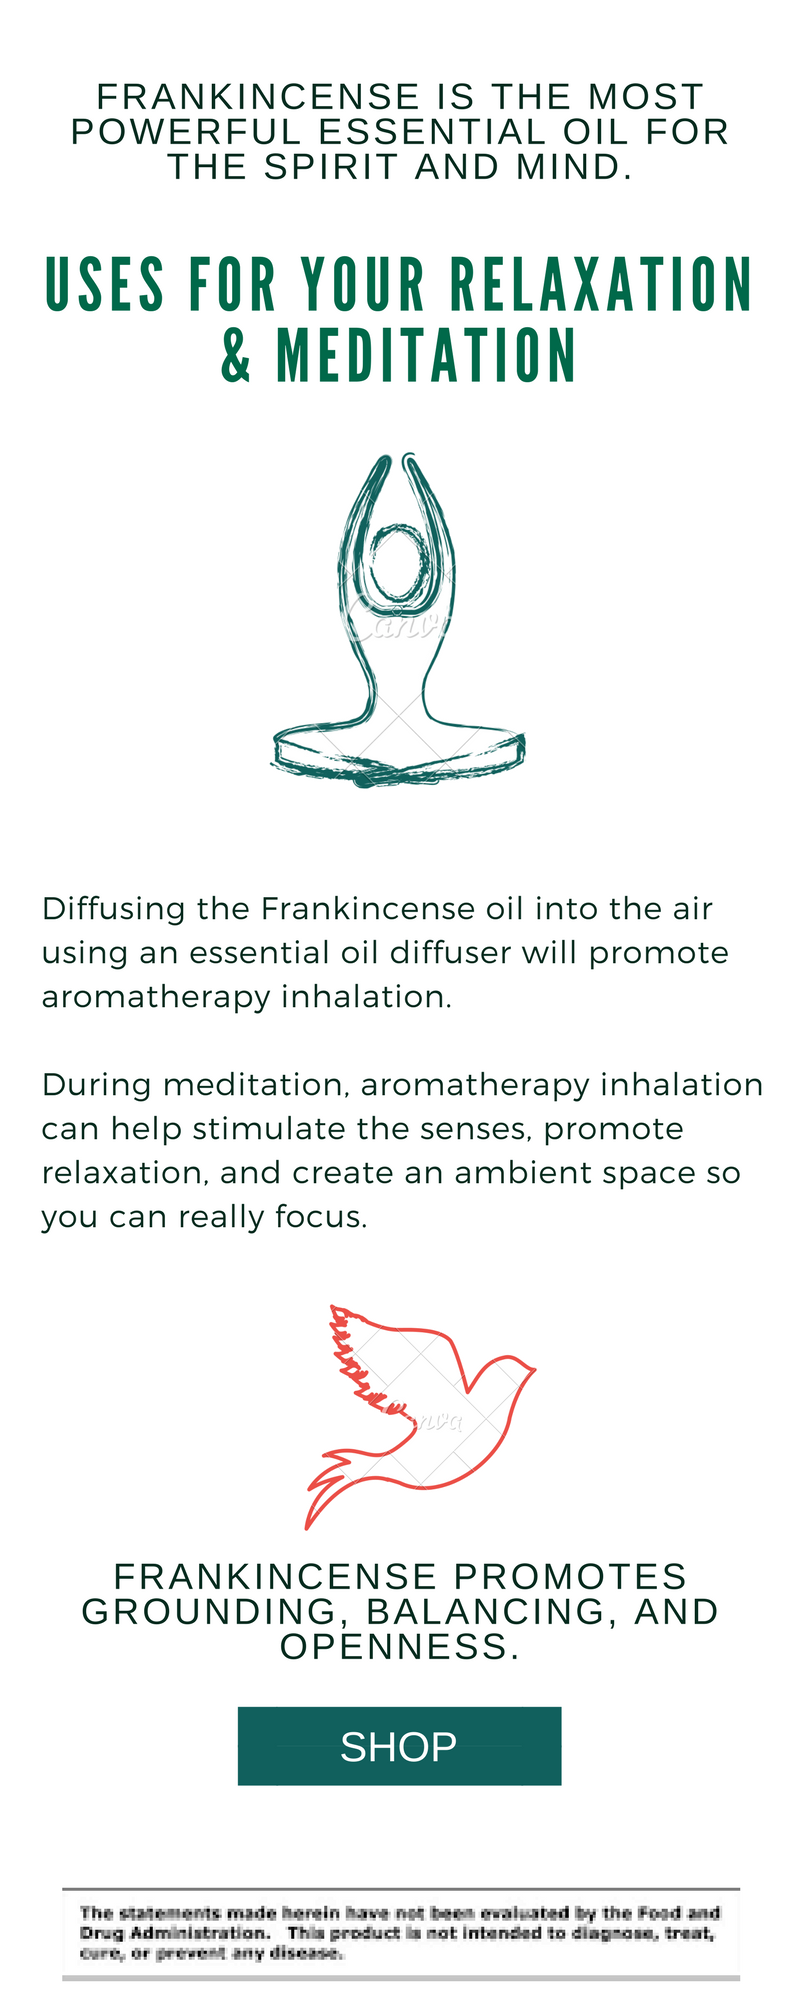 Use Frankincense Oil For Spiritually, mediation and relaxation